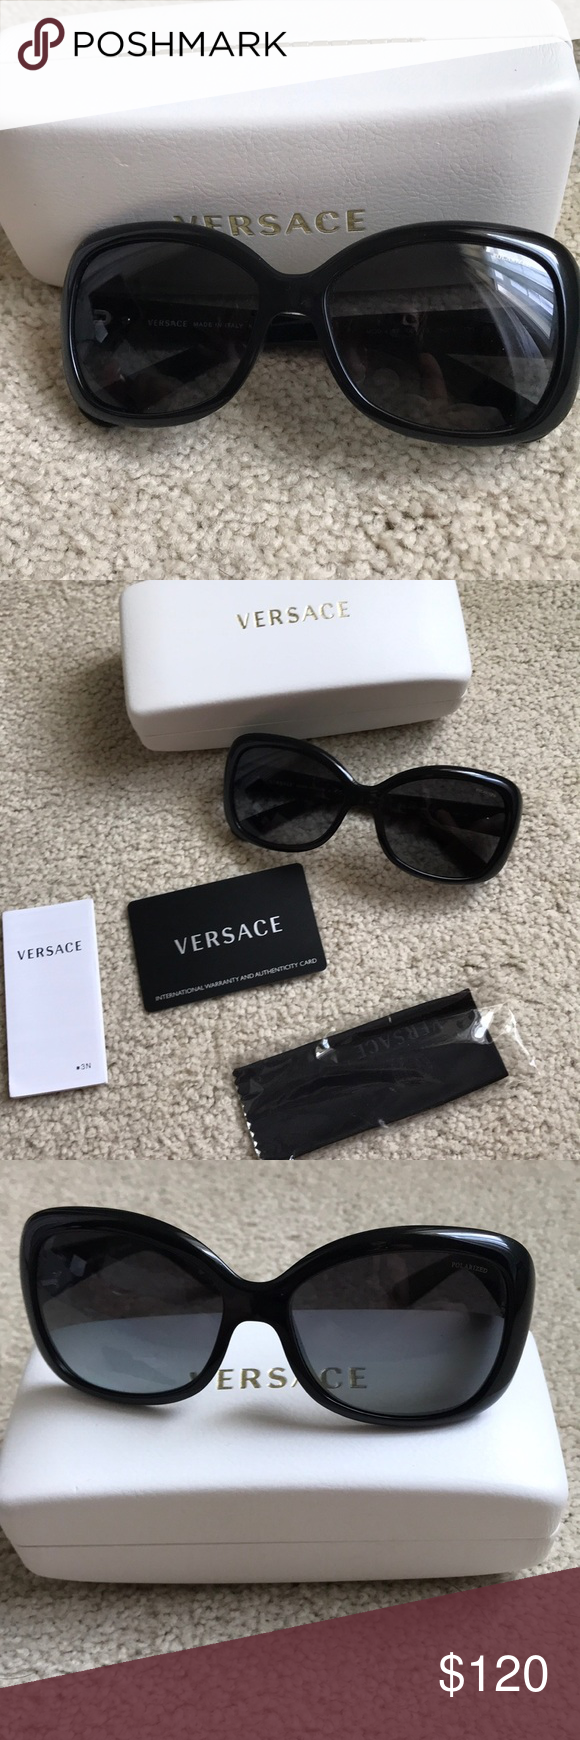 221b5f8530a1 Versace sunglasses. Authentic Like new Versace sunglasses with case and  authenticity card!! Polarized Versace Accessories Sunglasses